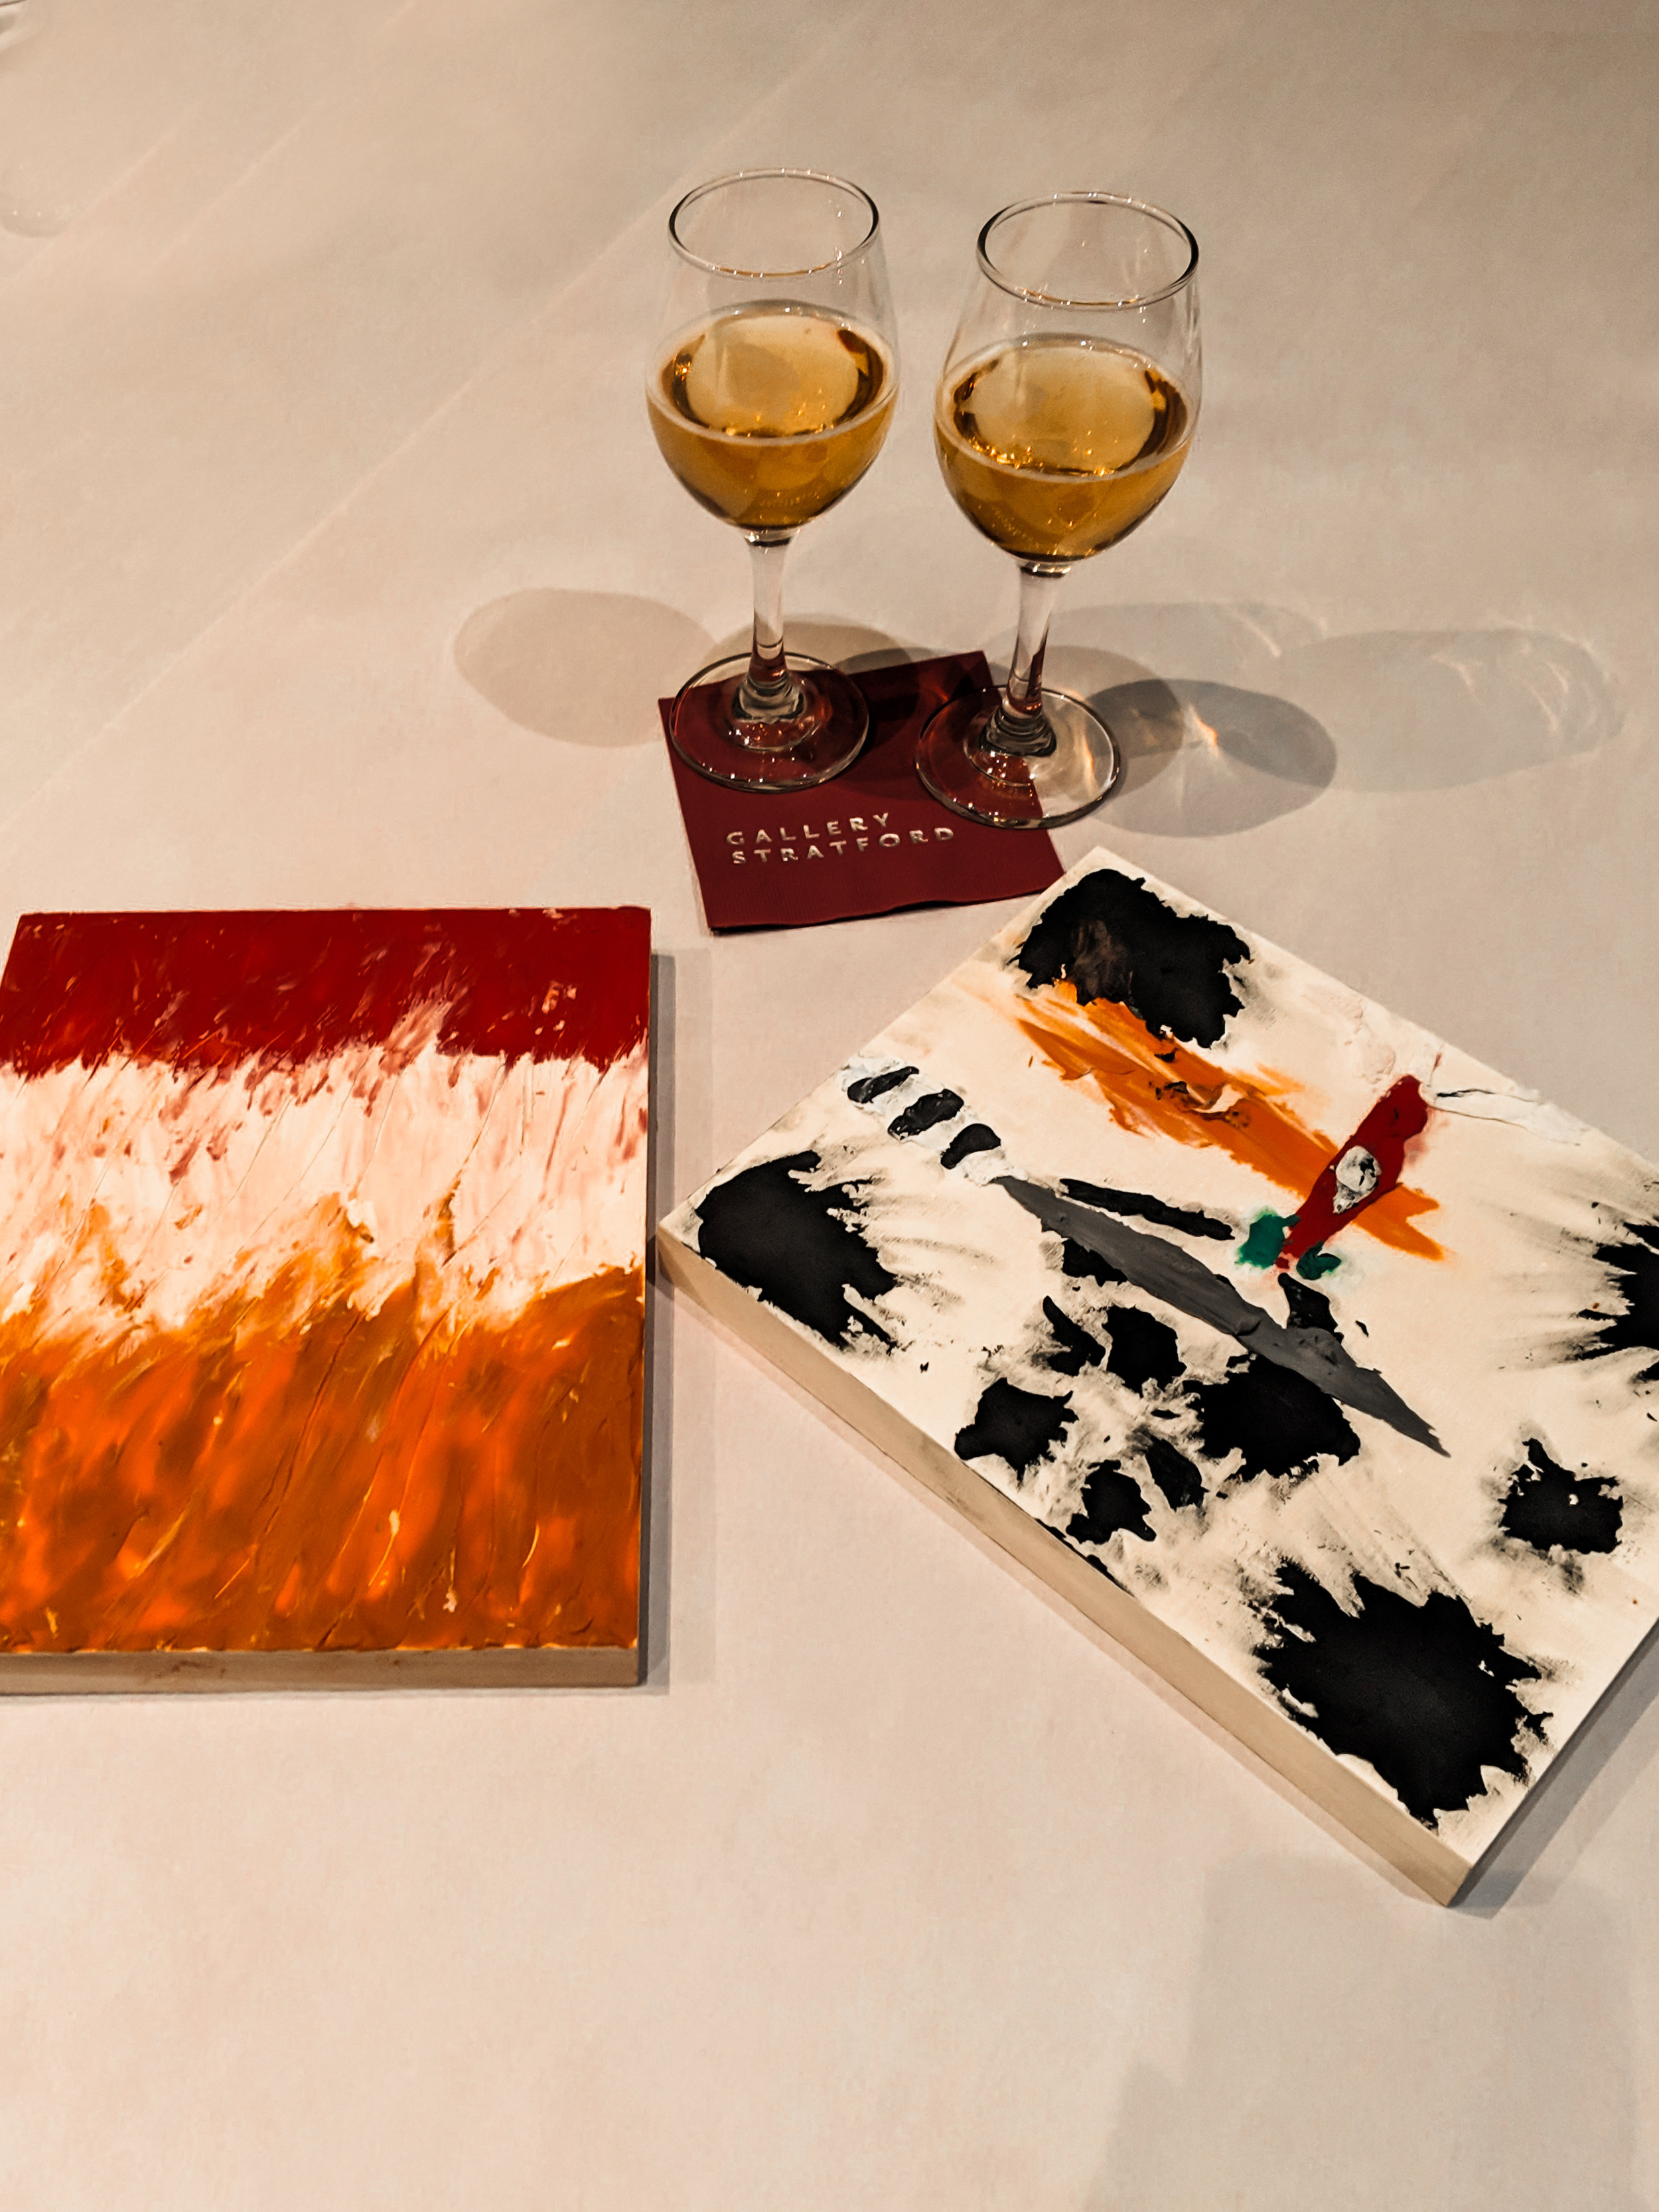 Our creations at Date Night, Gallery Stratford